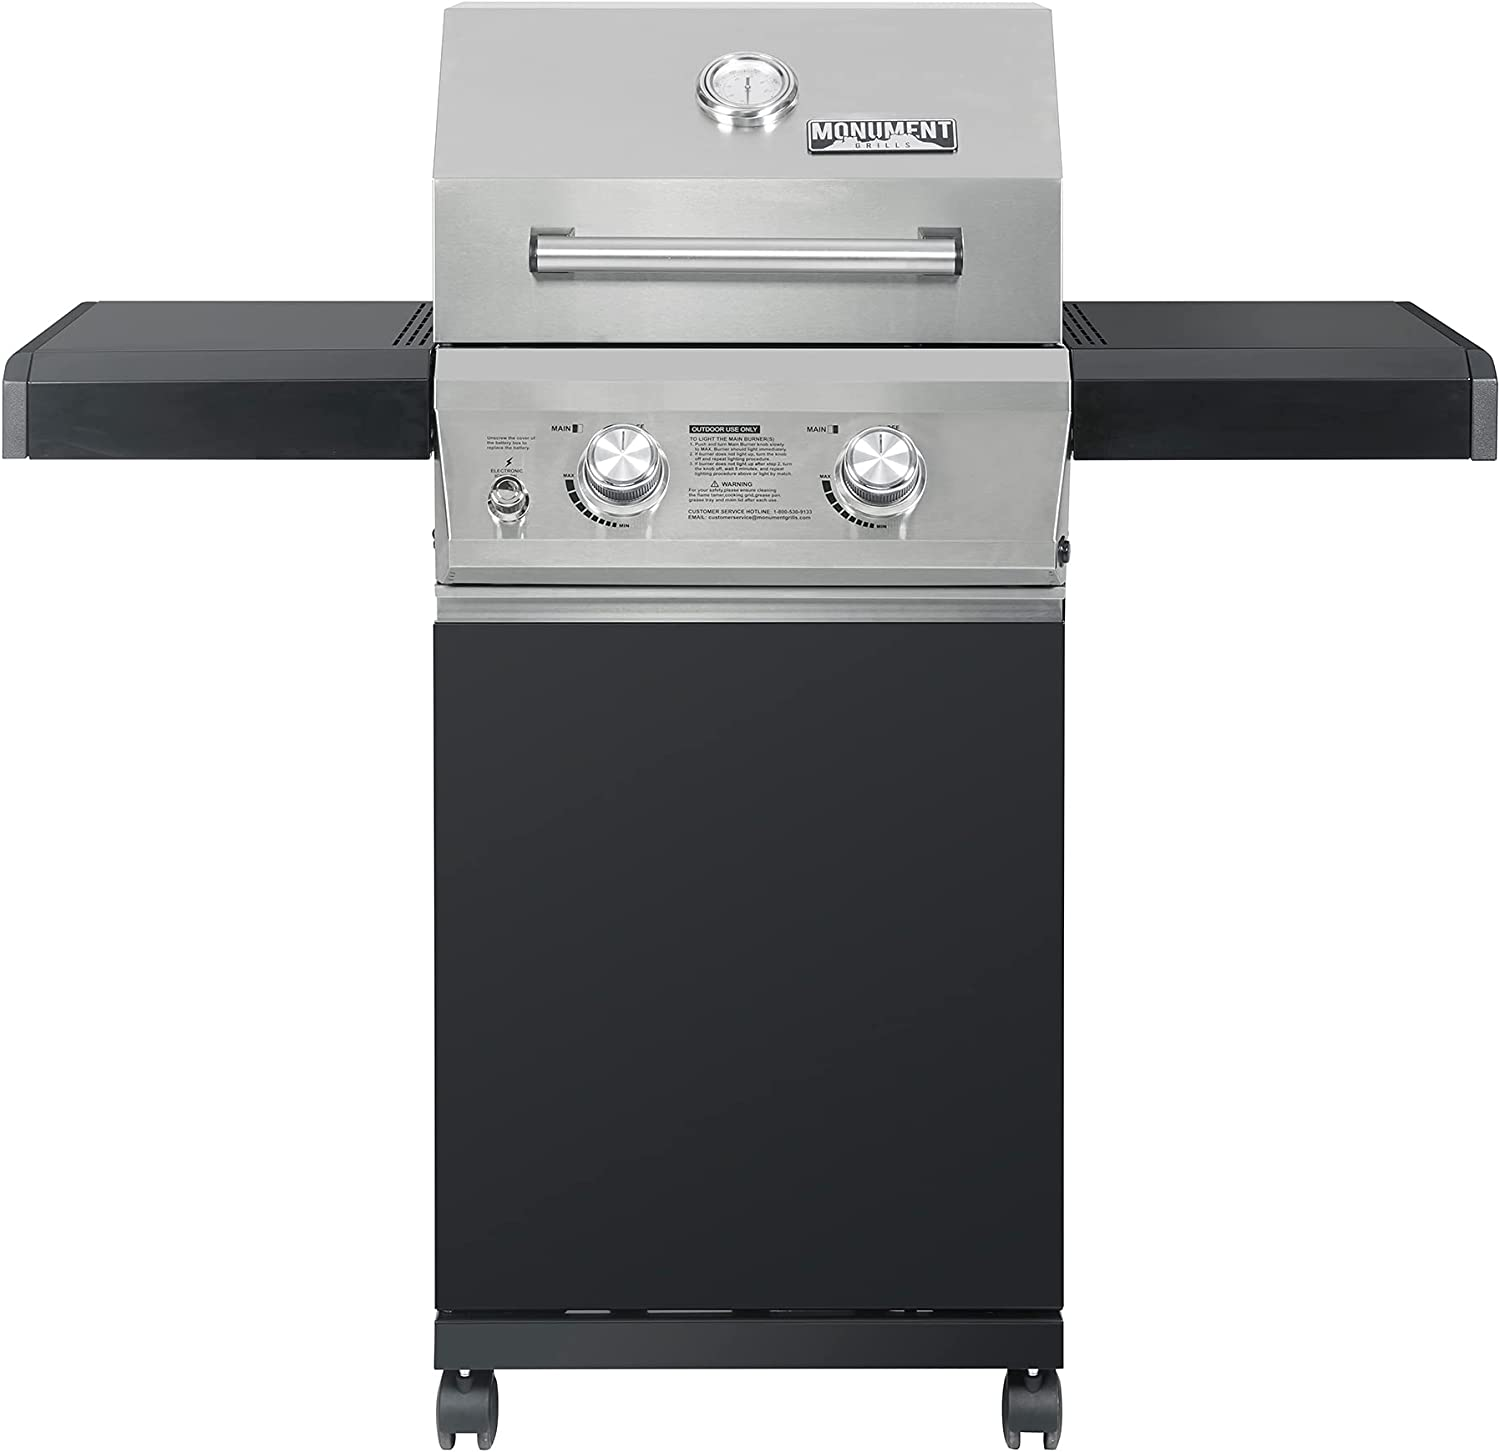 Monument Grills 2 Burners Propane Gas Grill Outdoor Cooking Stainless Steel BBQ Grills